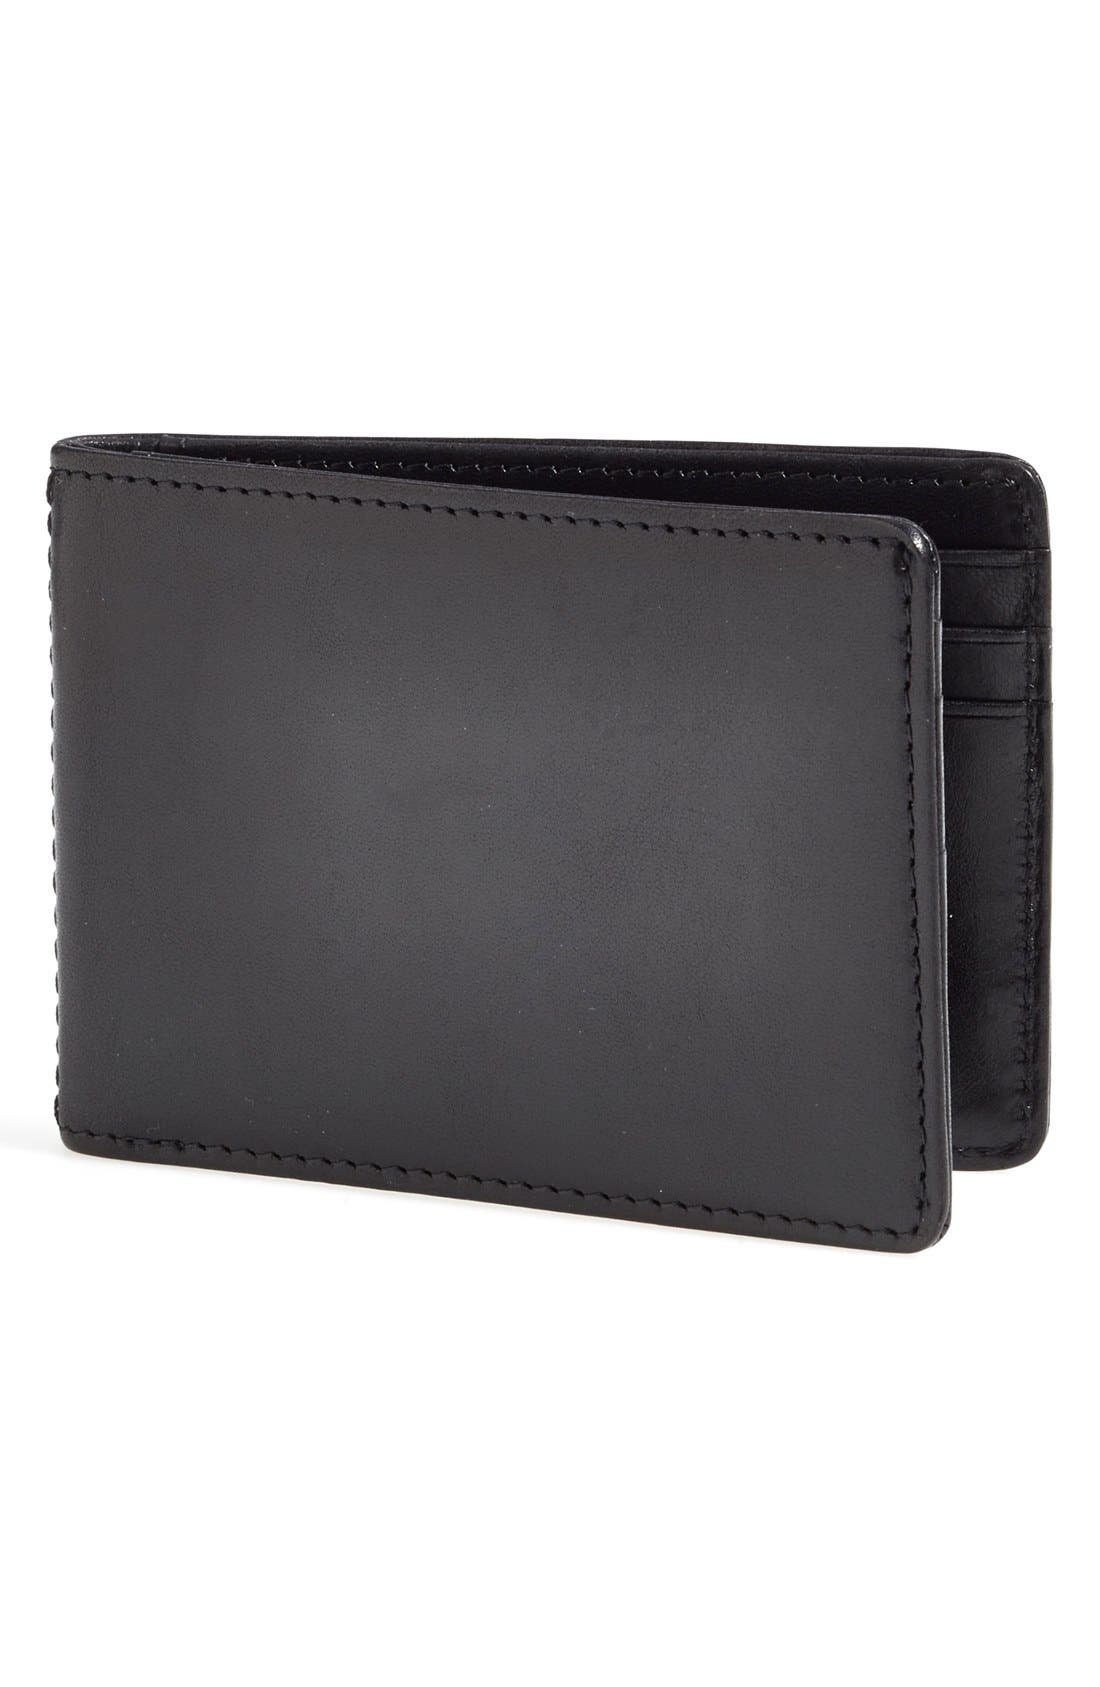 Small Bifold Wallet,                         Main,                         color,